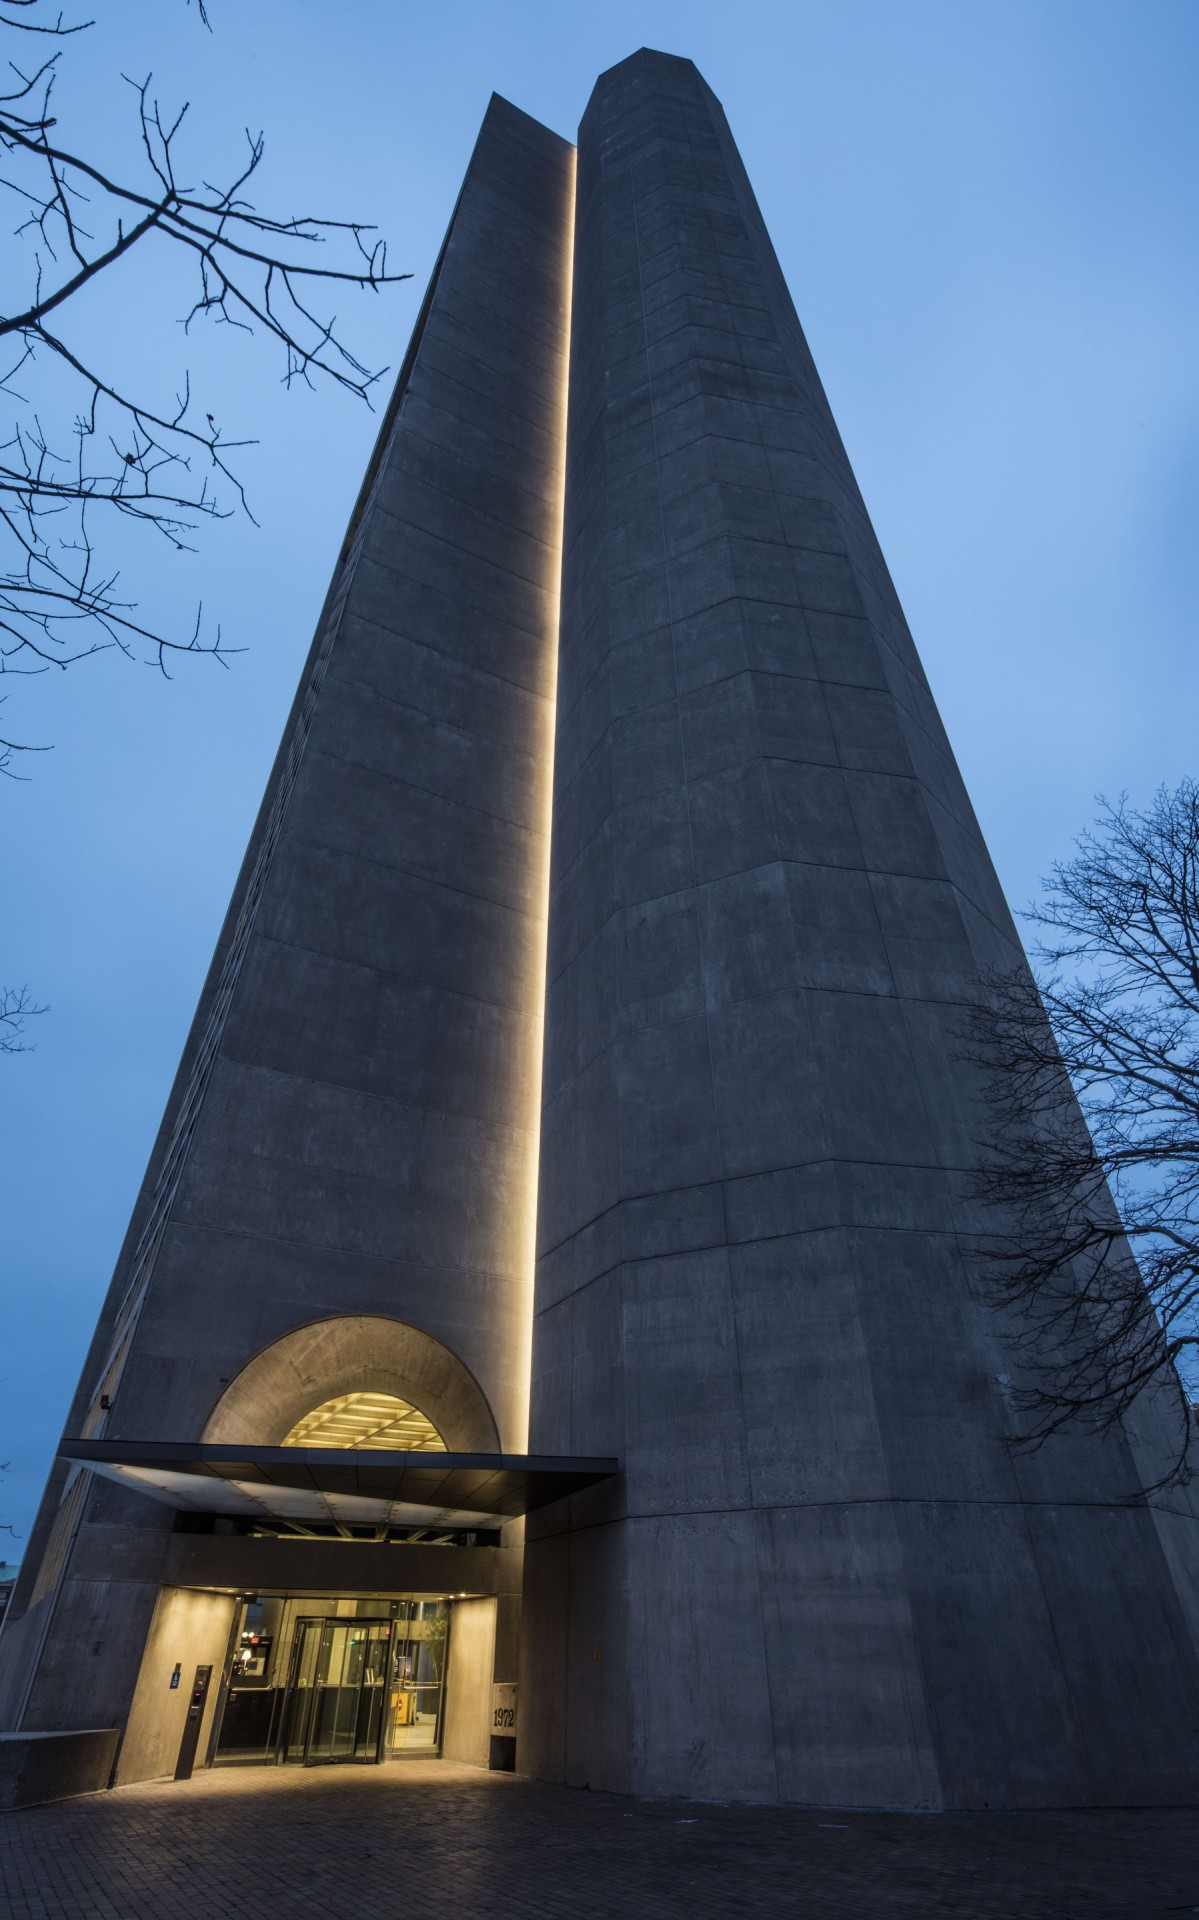 The luminaires are installed in a vertical niche along the length of the tower.